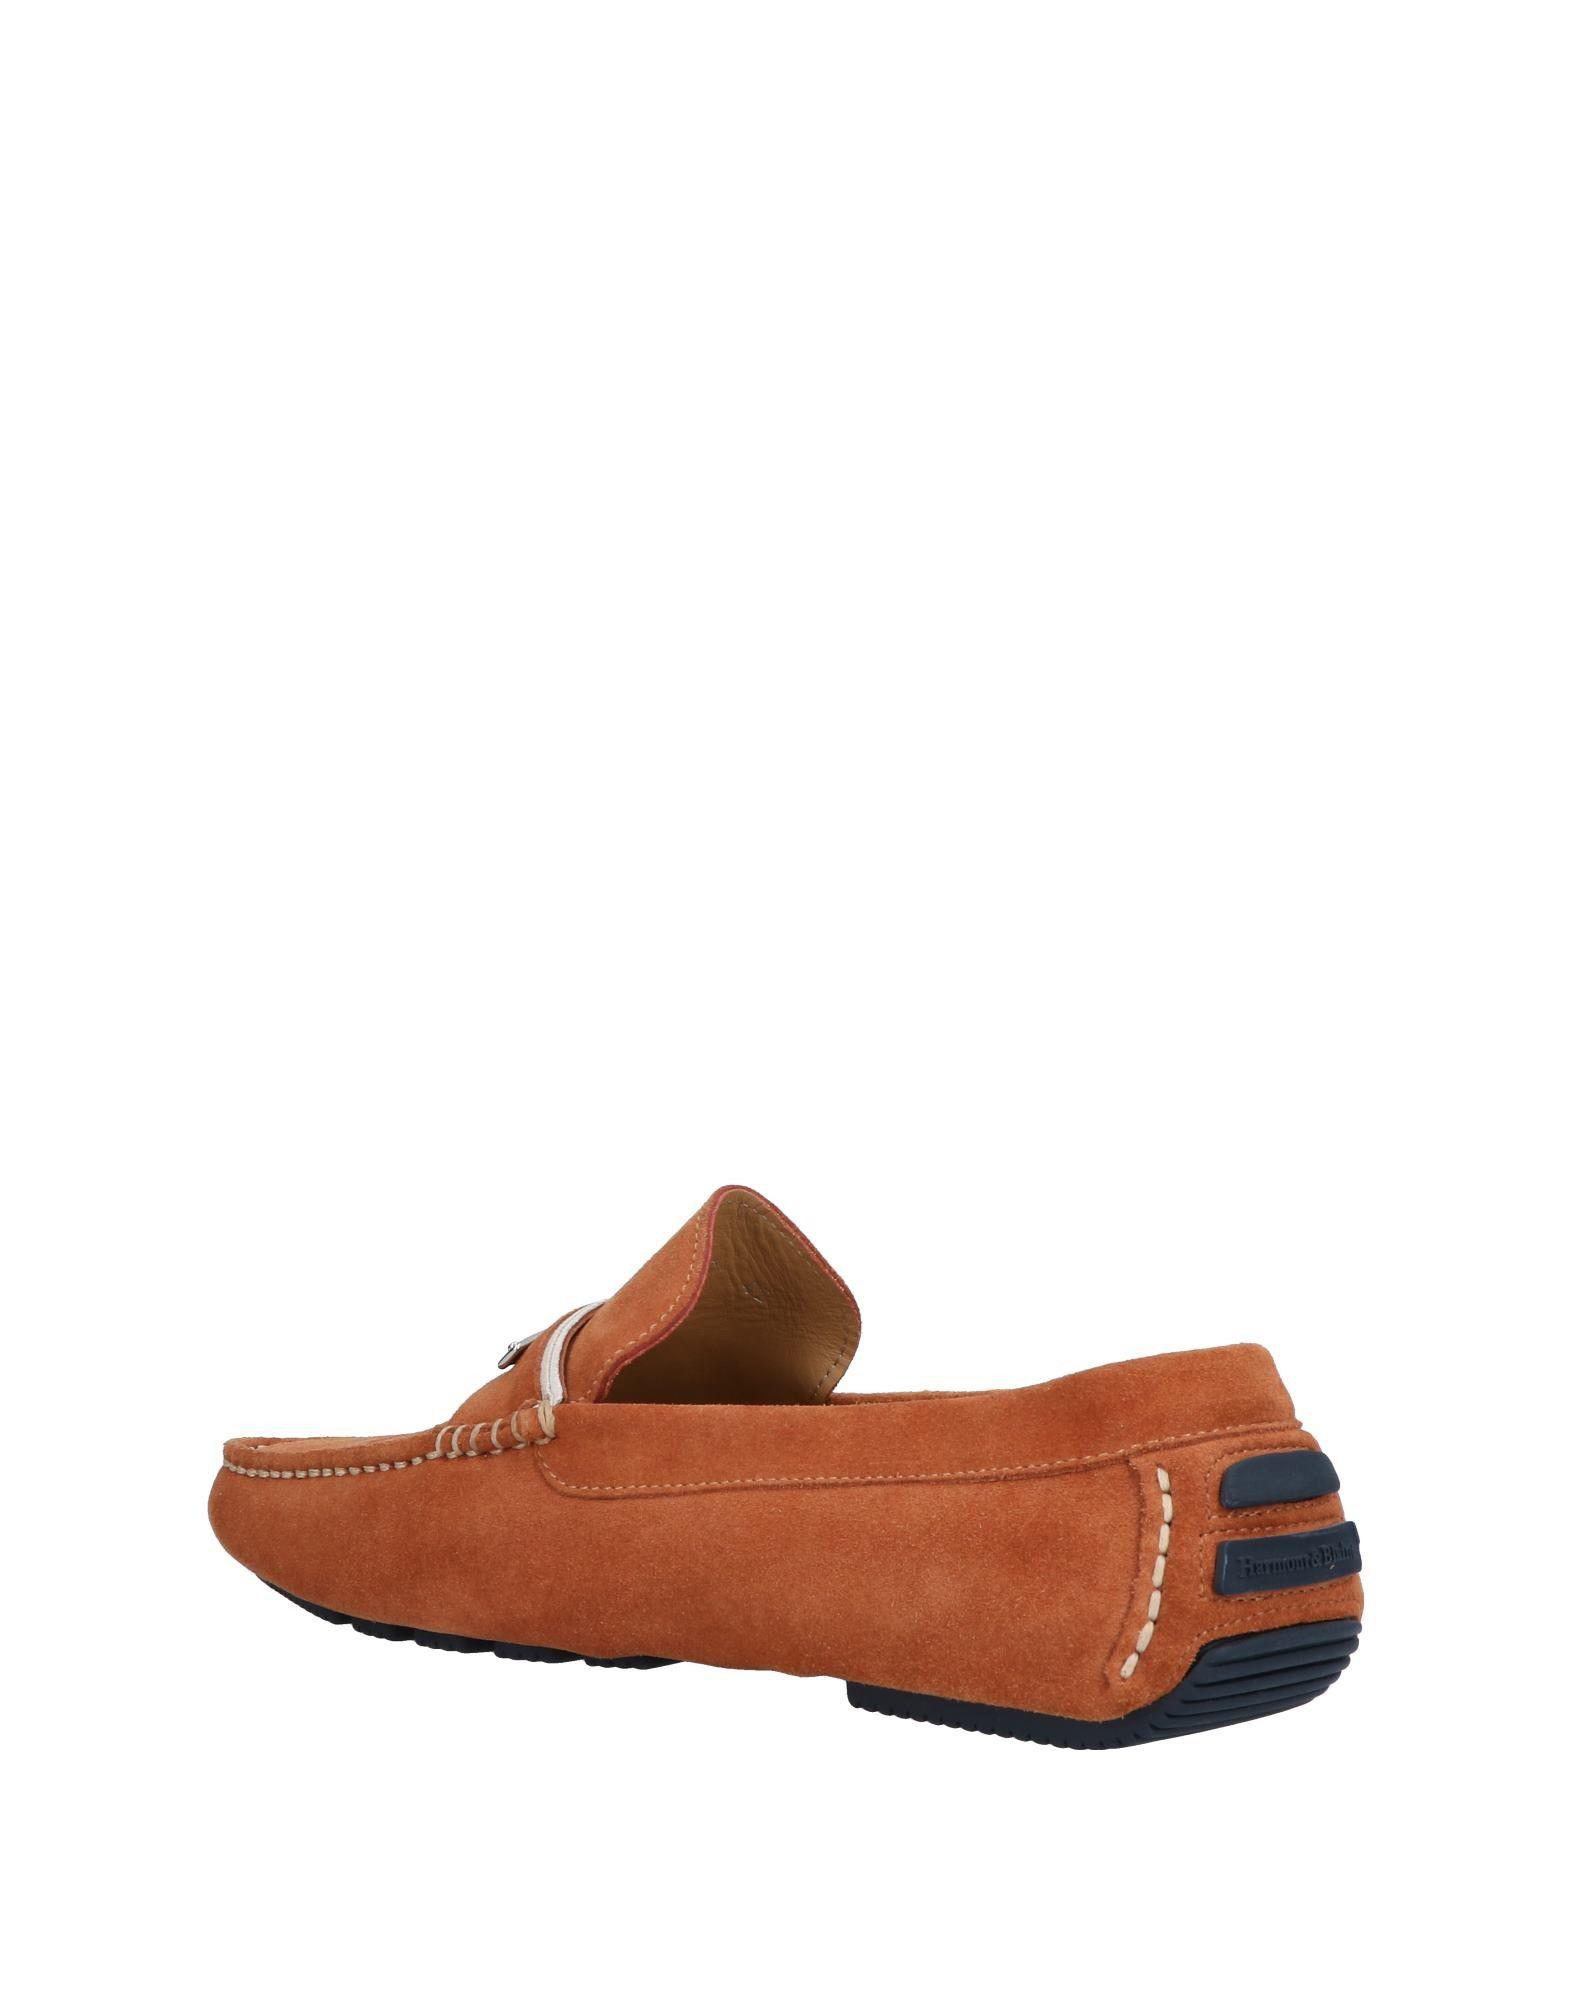 Harmont & Blaine Suede Loafer in Tan (Brown) for Men